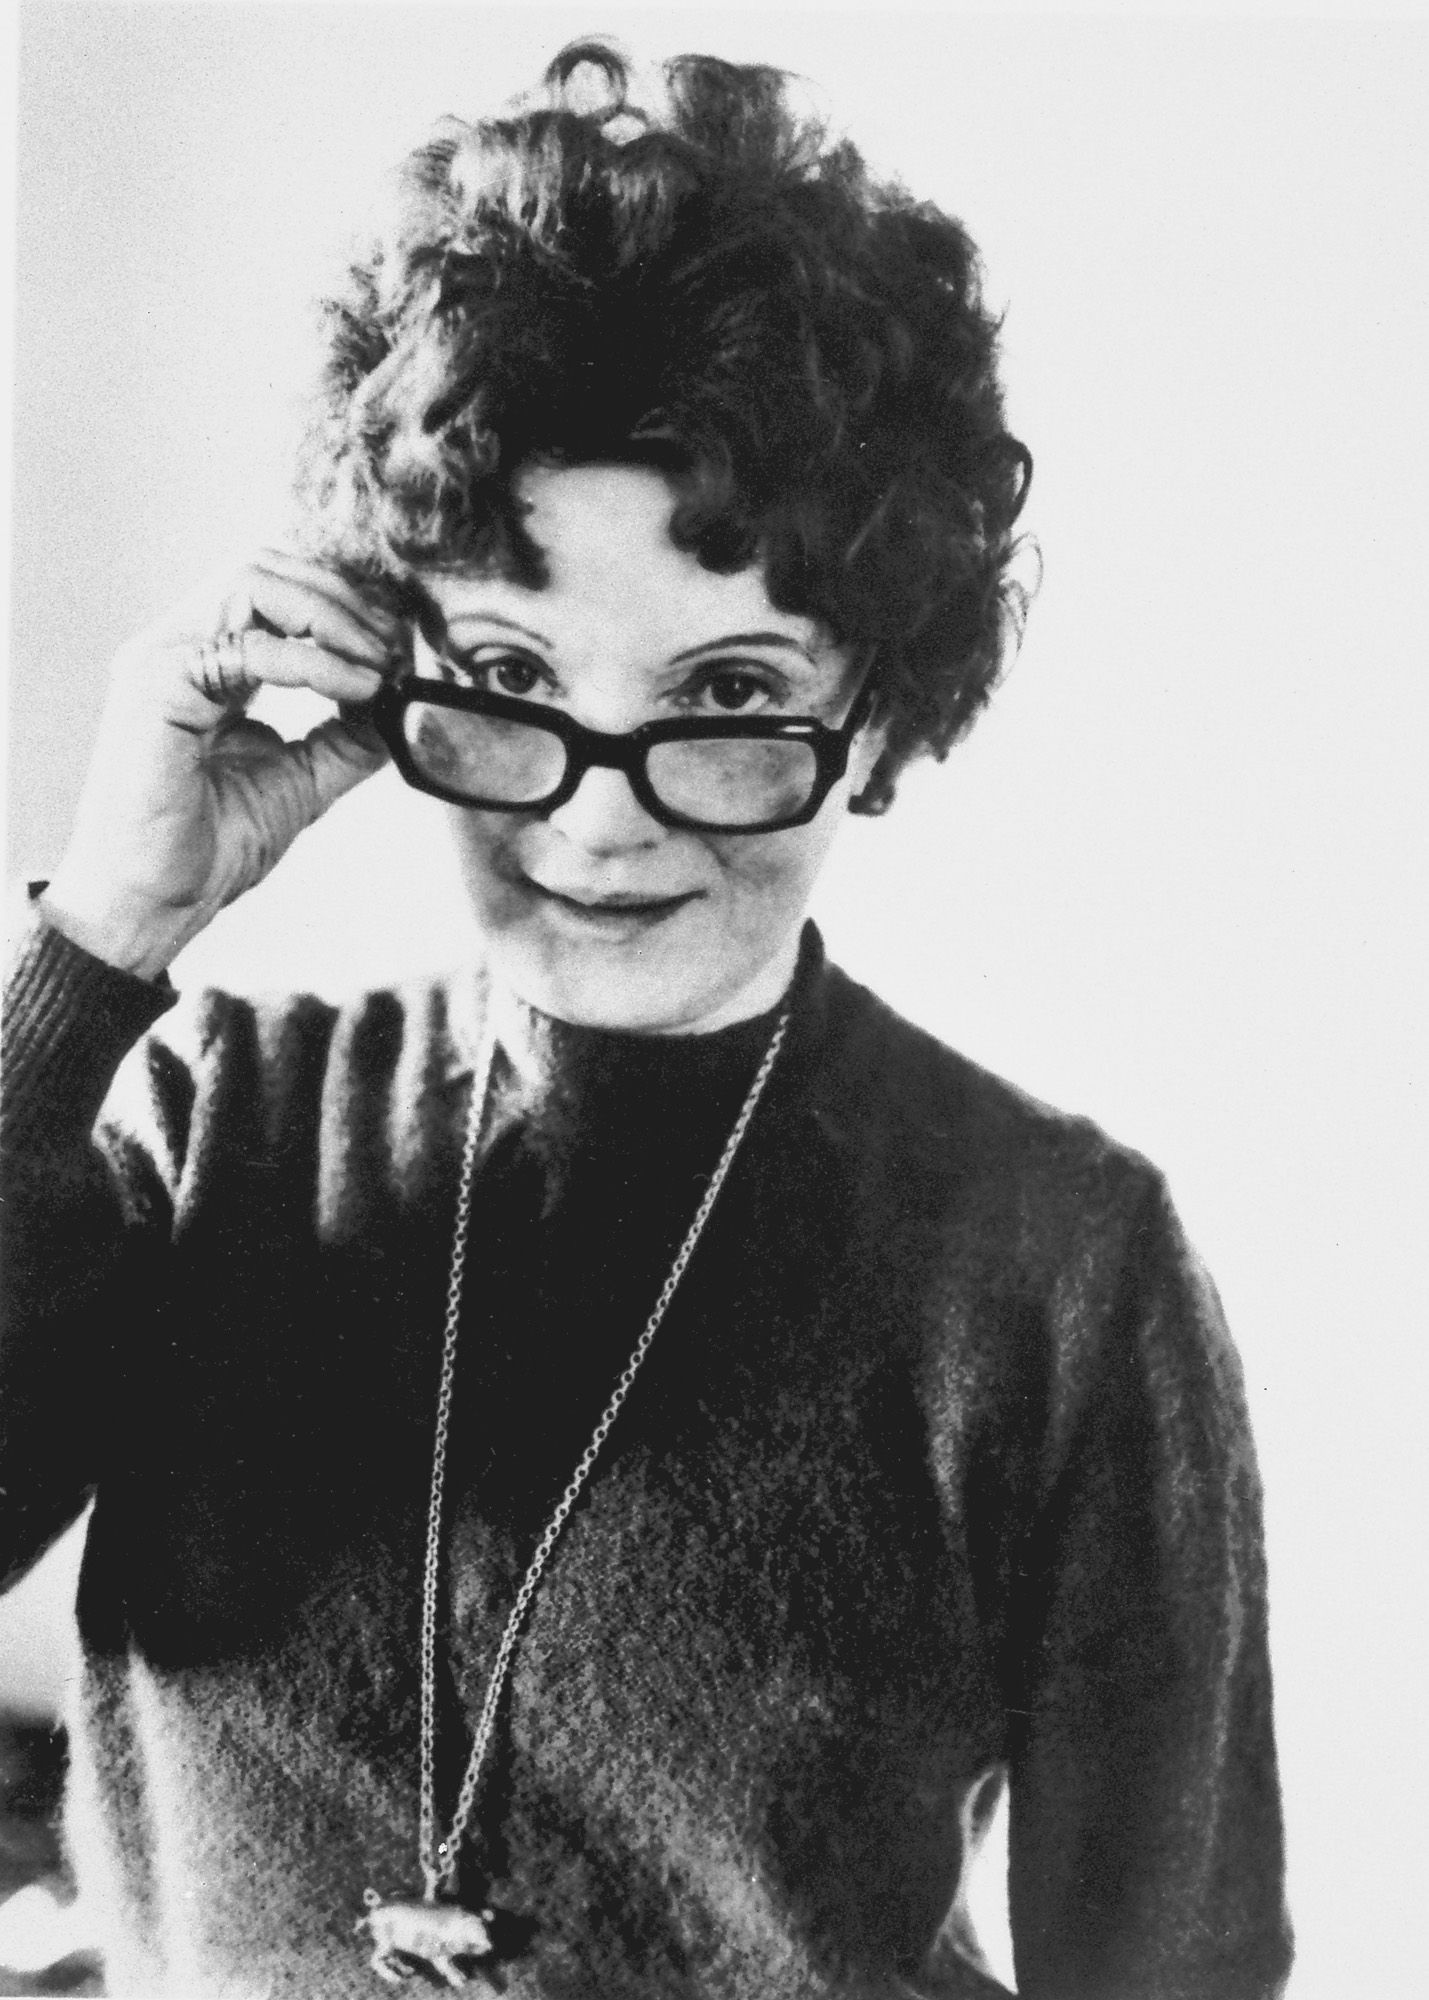 Muriel Spark, author of The Prime of Miss Jean Brodie